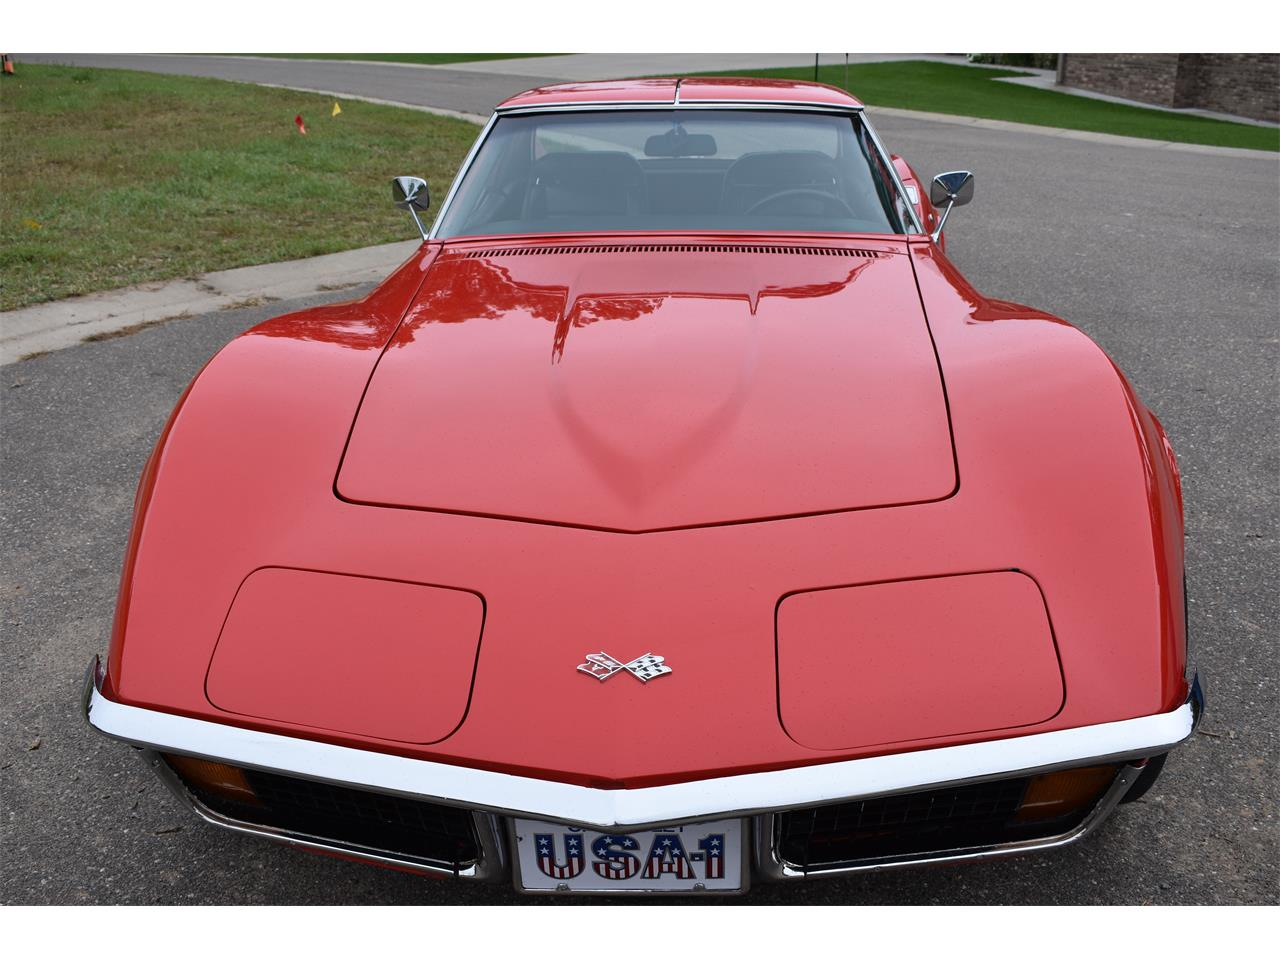 Large Picture of 1972 Corvette located in Little Falls Minnesota - $27,000.00 - OMCE